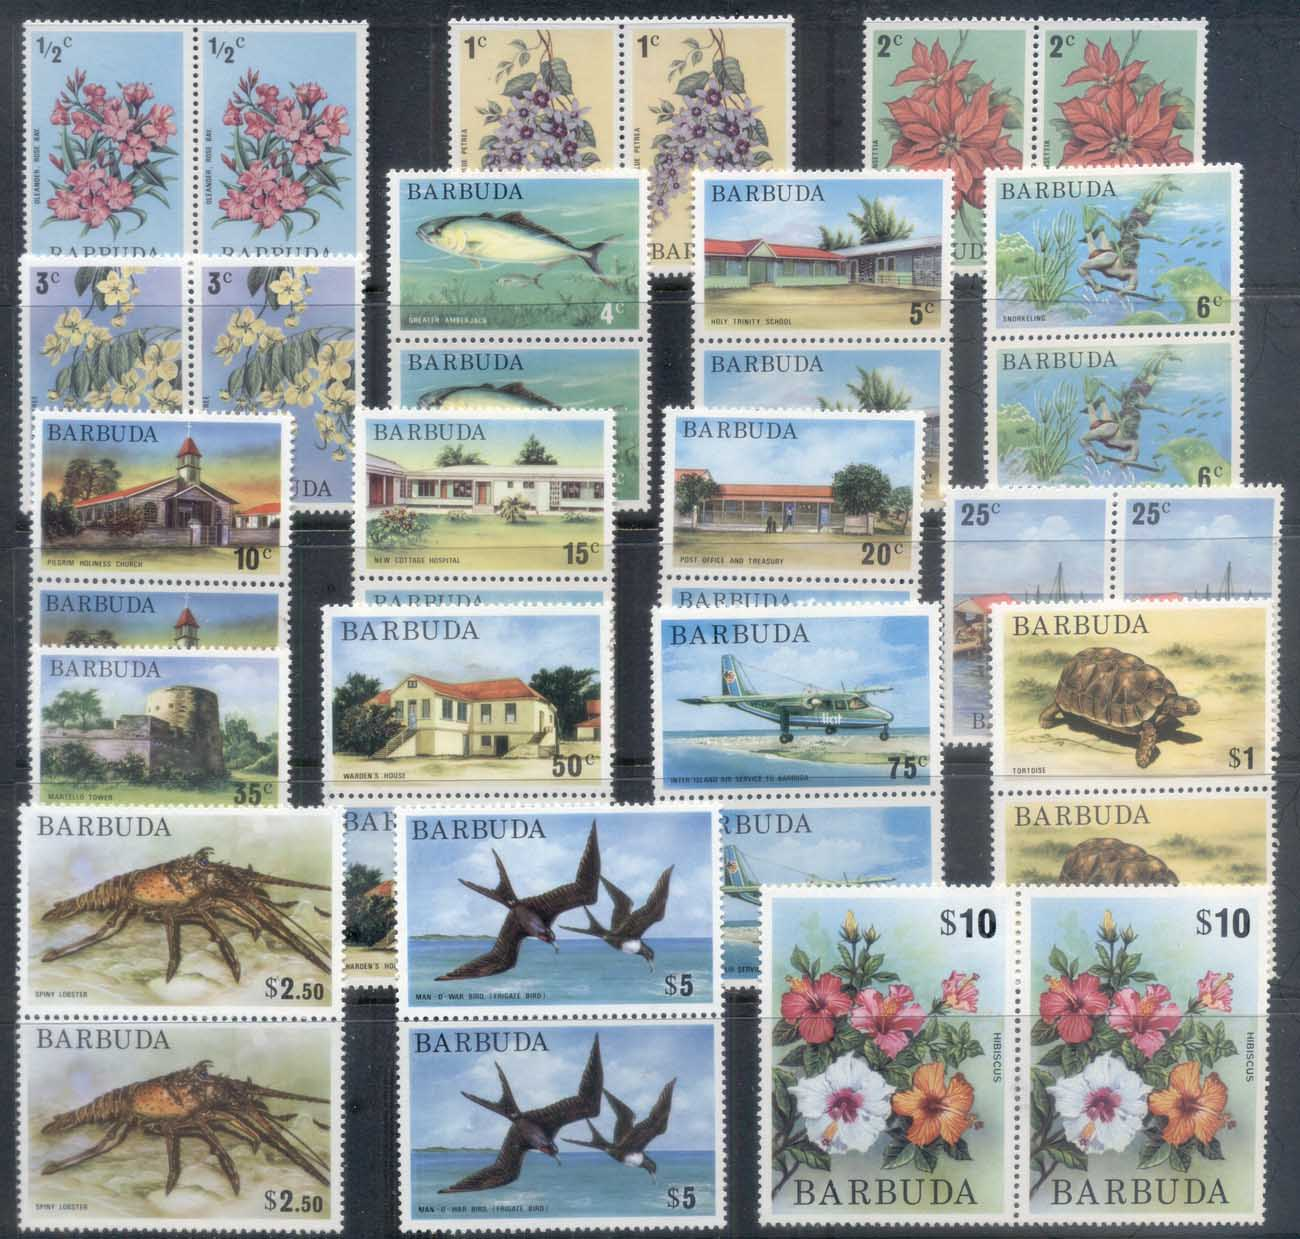 Barbuda 1974-75 Pictorials, Flowers, Views pr MUH